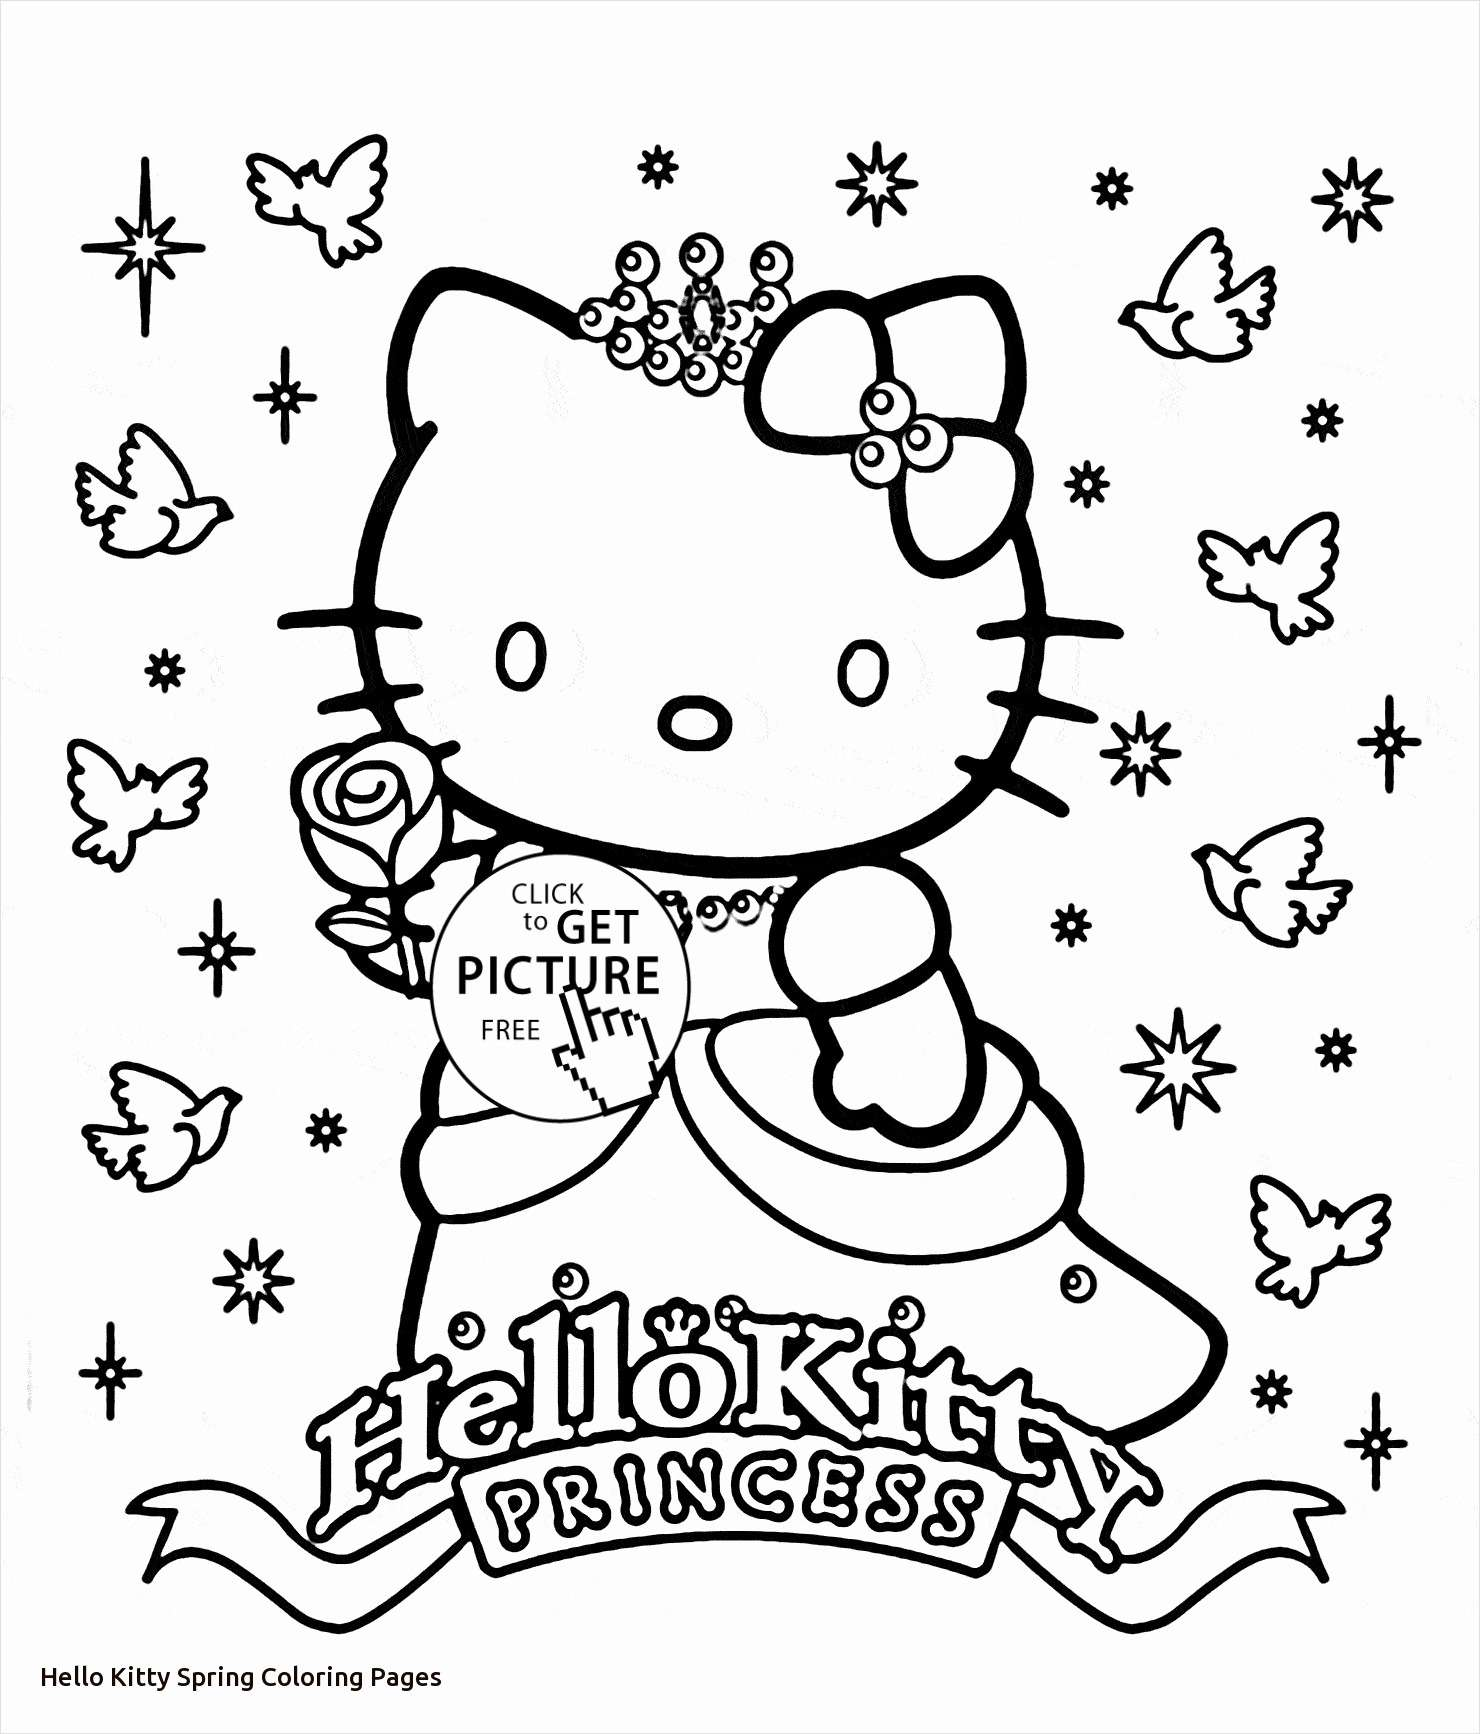 Hello Kitty Christmas Coloring Pages Free Print With Princess Page